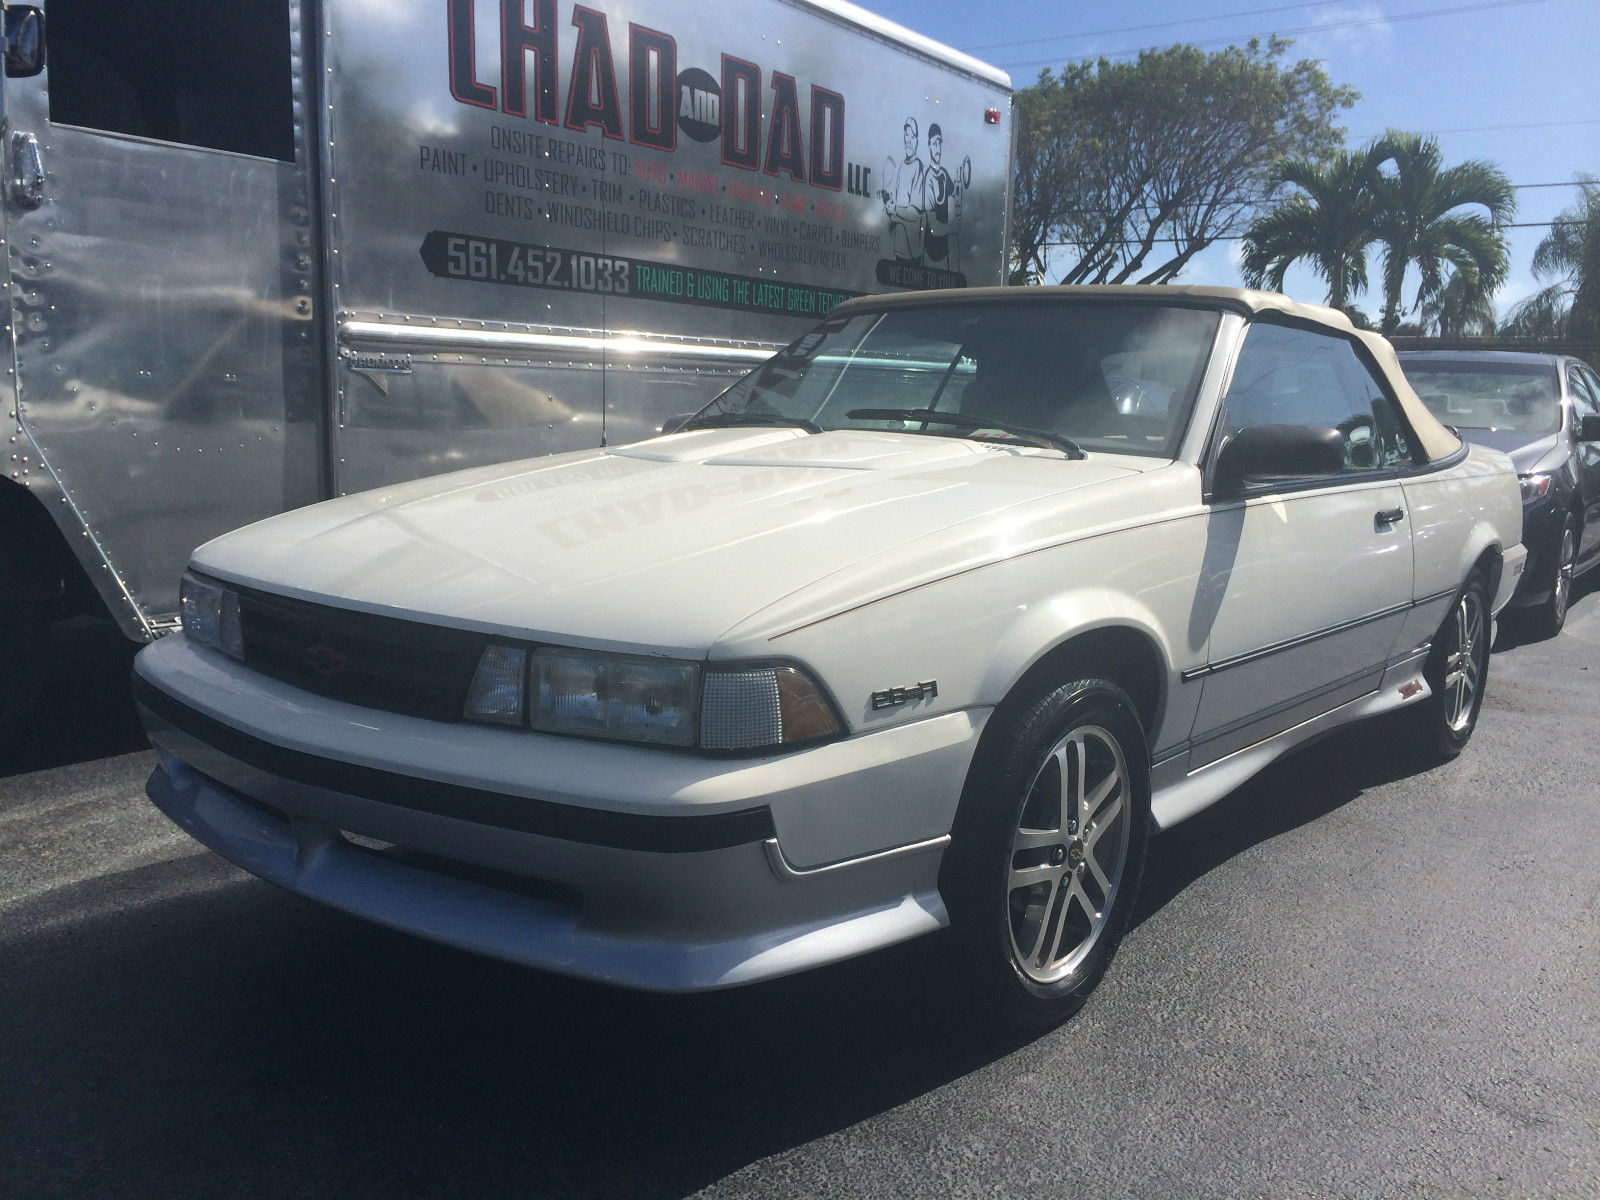 1989 cavalier z24 convertible chevy convertible classic for West palm beach motor vehicle registration